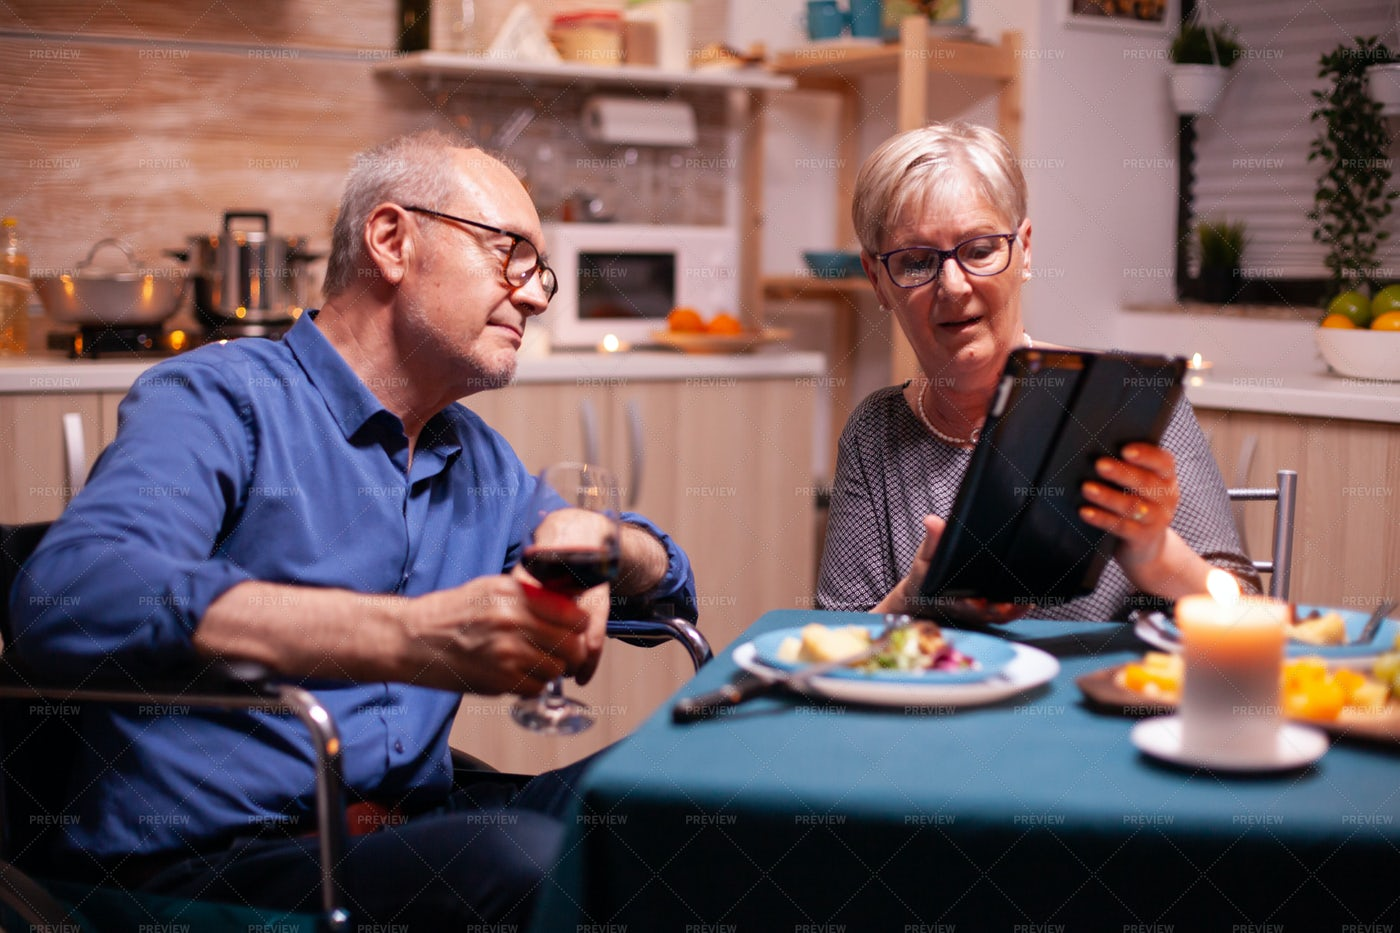 Using A Tablet At Dinner: Stock Photos